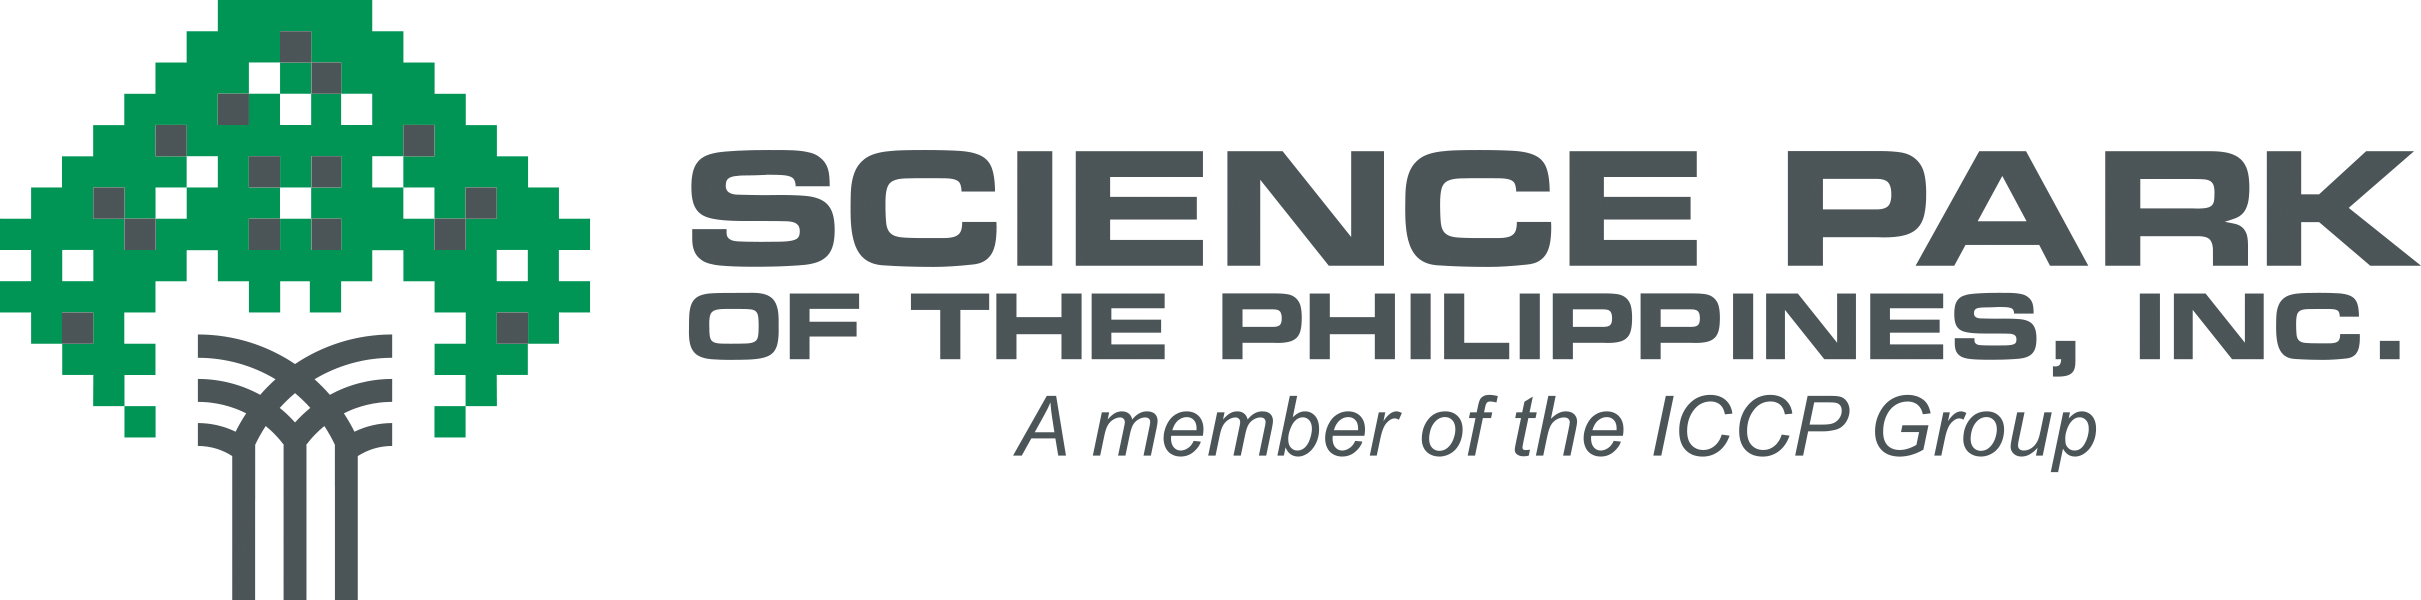 Science Park of the Philippines, Inc.